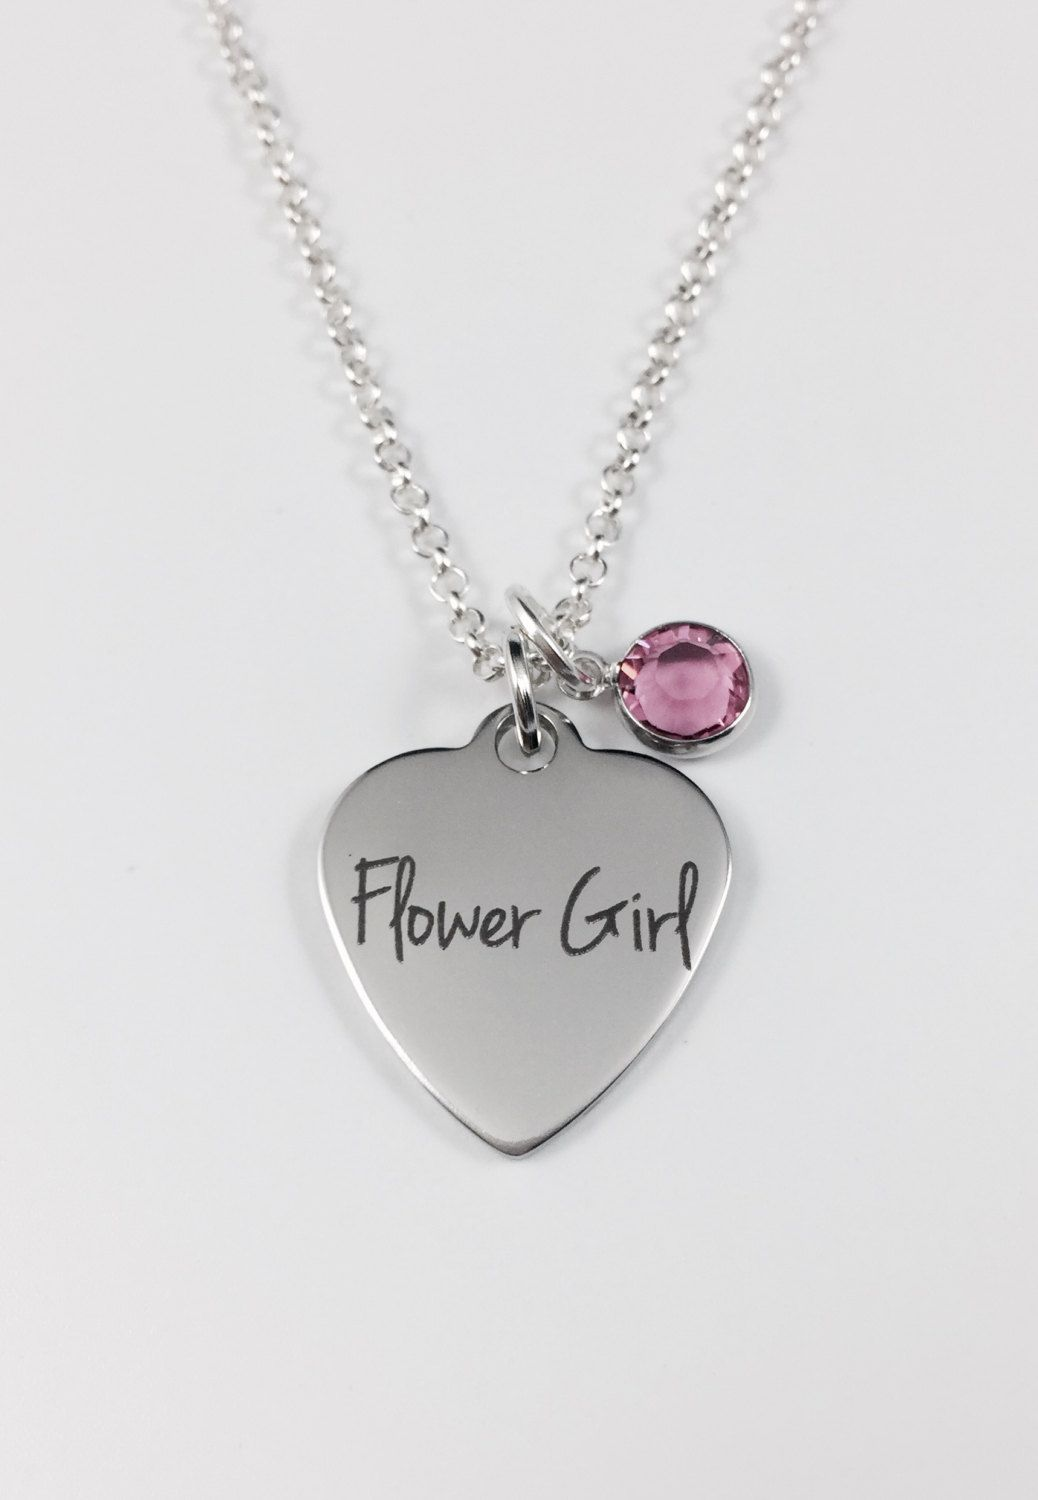 Flower girl heart necklace with swarovski crystal birthstone laser flower girl heart necklace with swarovski crystal birthstone laser engraved pendant stainless steel pendant aloadofball Gallery